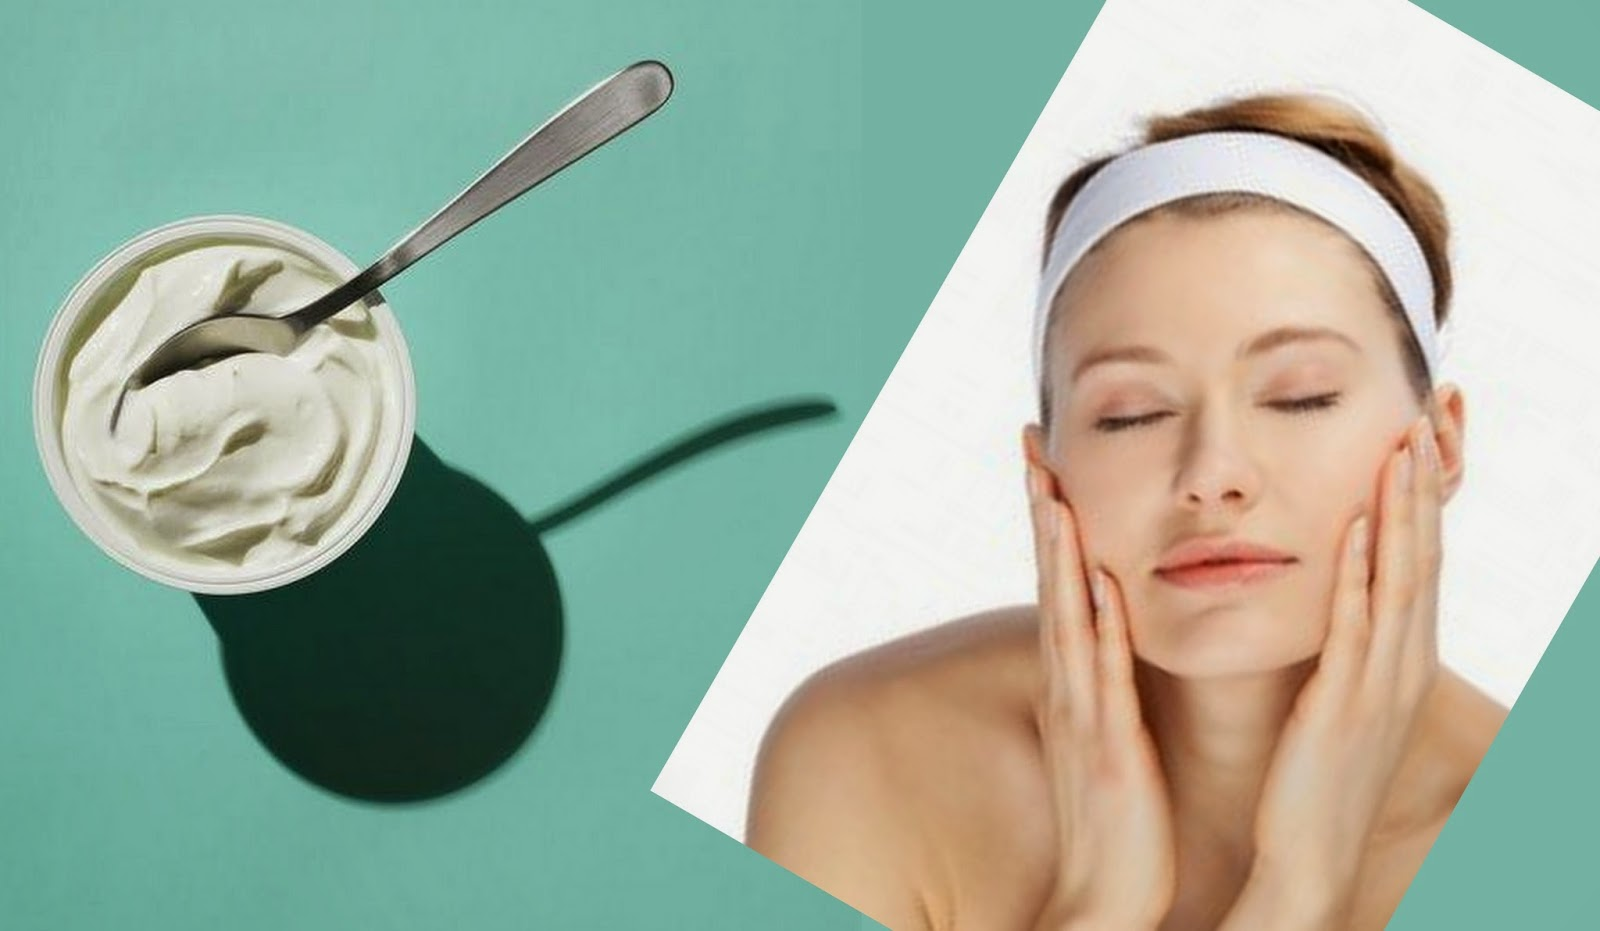 probiotics help in acne, rosacea and eczema